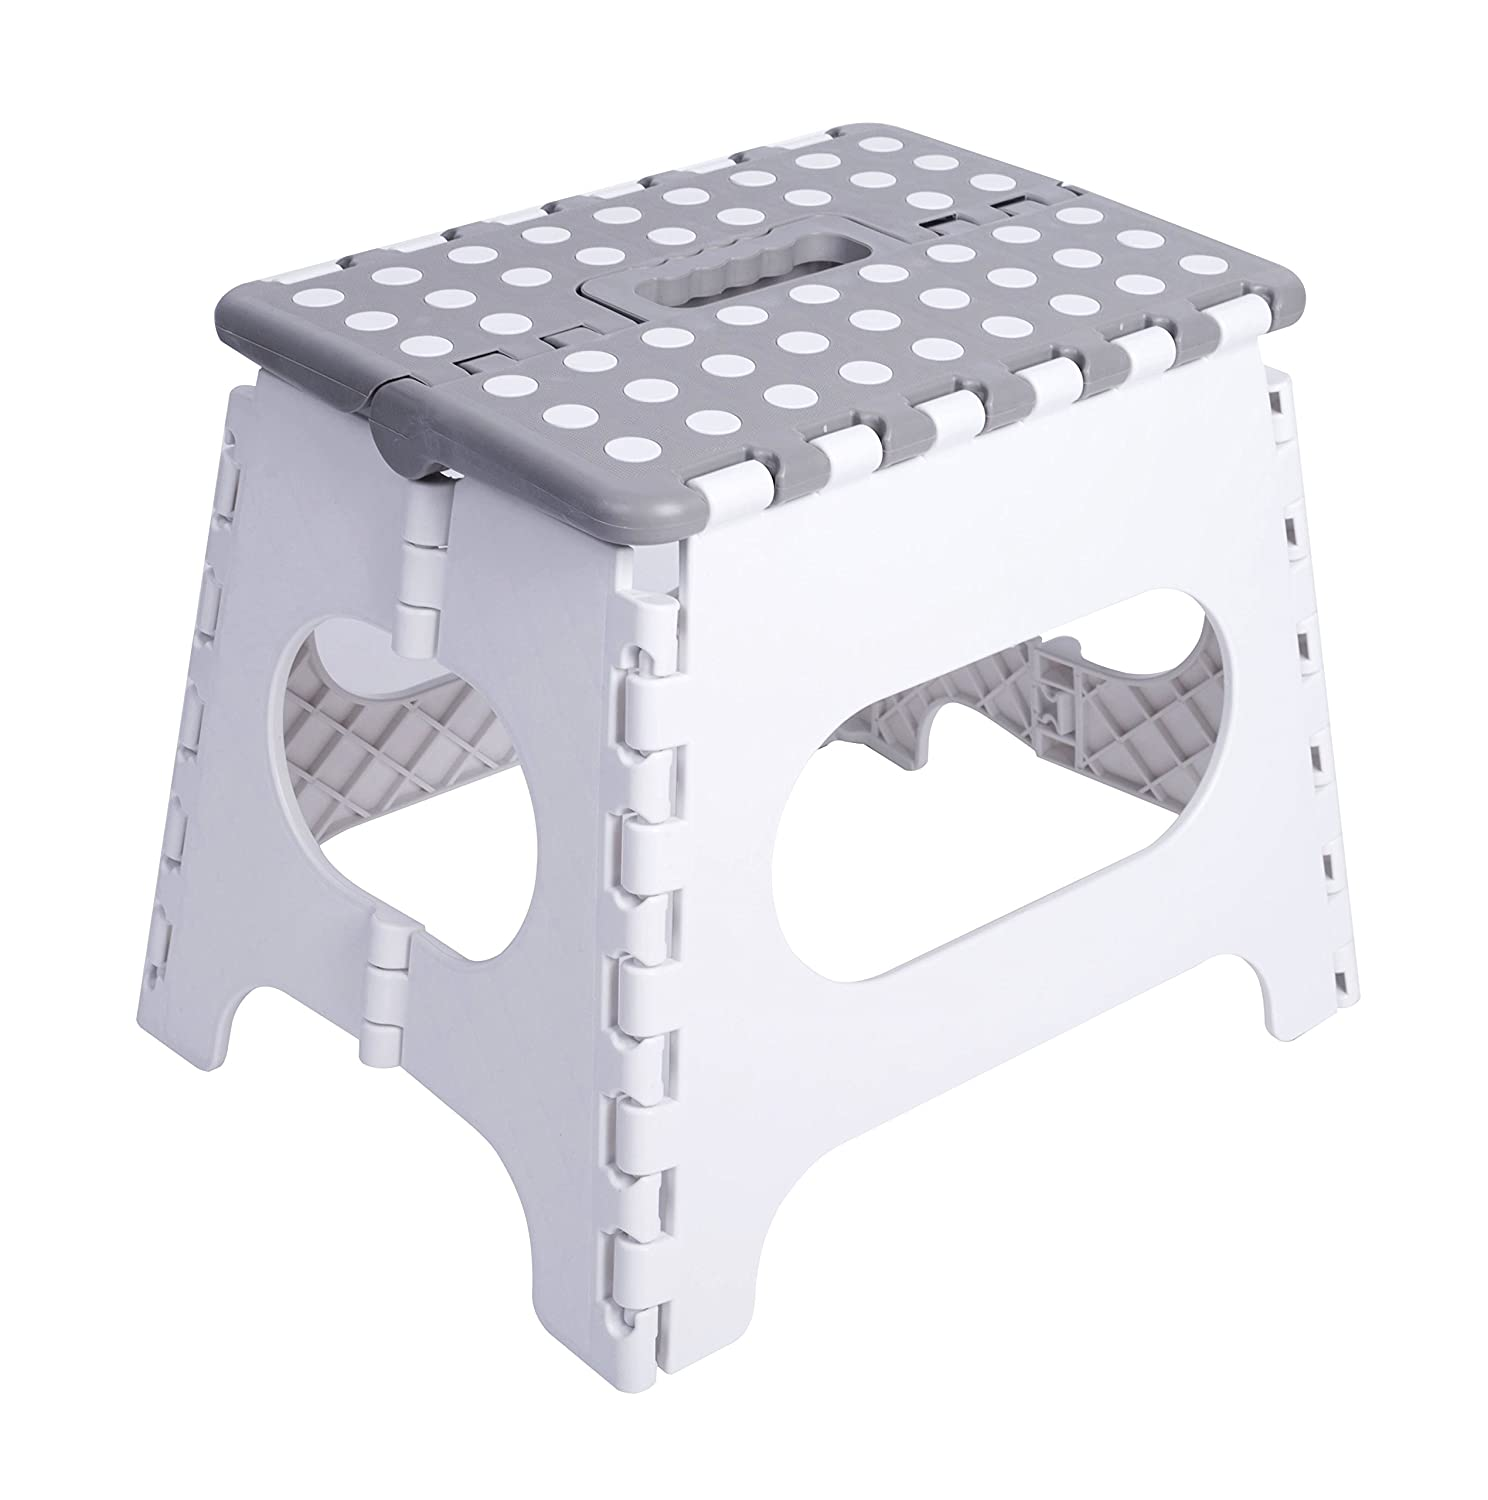 Unity 11 Non-Slip Foldable Step Stool Carrying Handle - Supports up to 300LBS - Easy Open - Perfect Kitchen, Bathroom, Bedroom & More Unity (White Grey/White Dots) Unity-Frankford